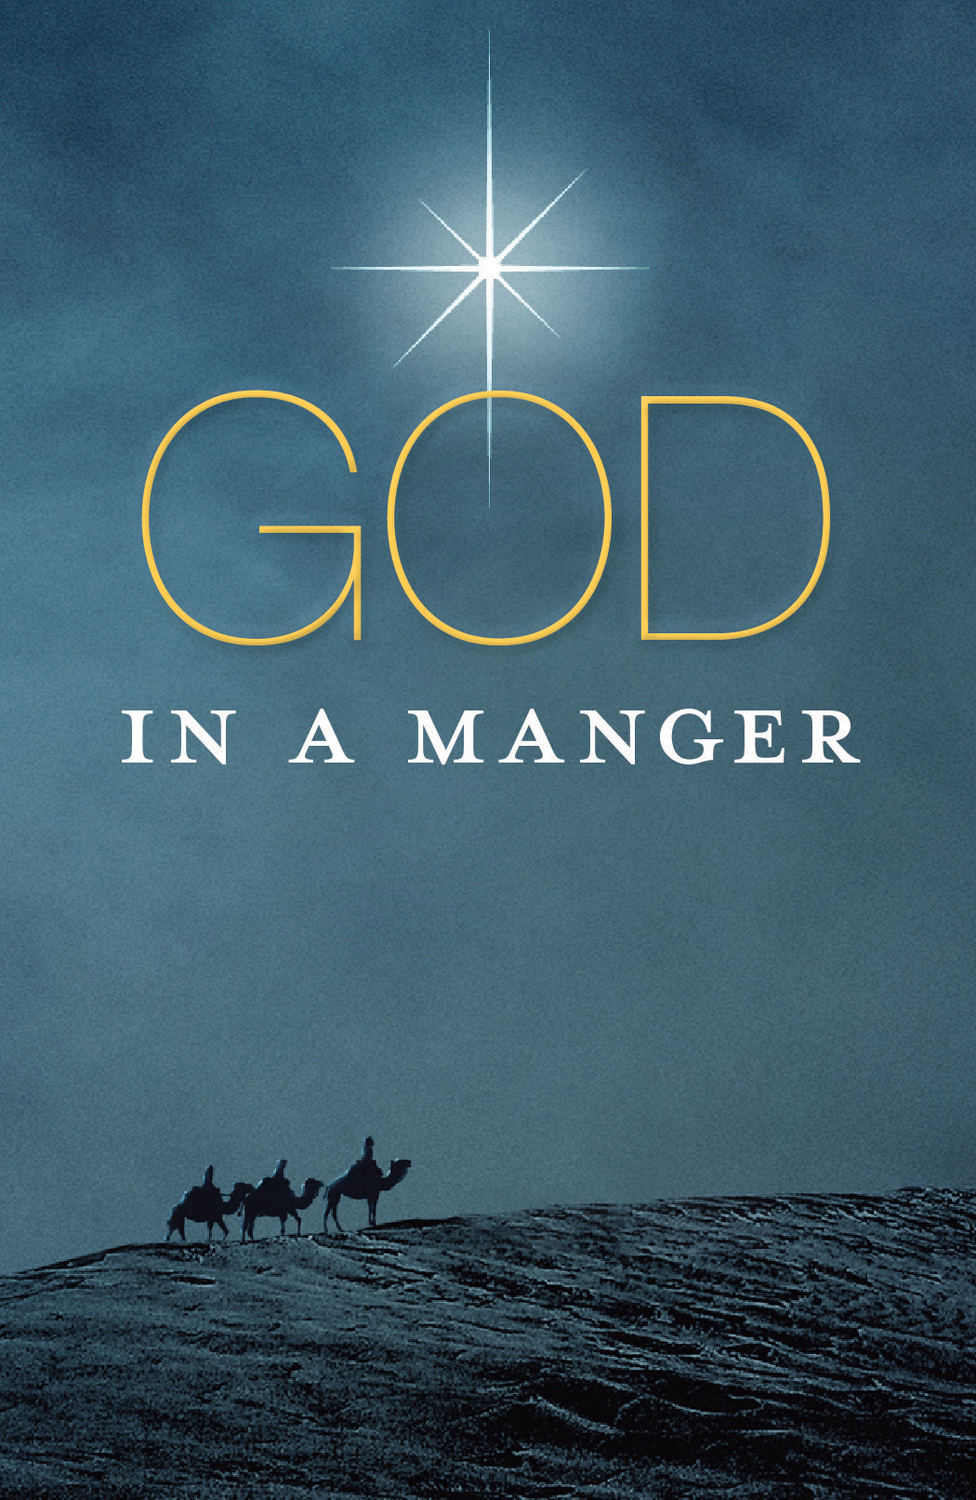 God in a Manger